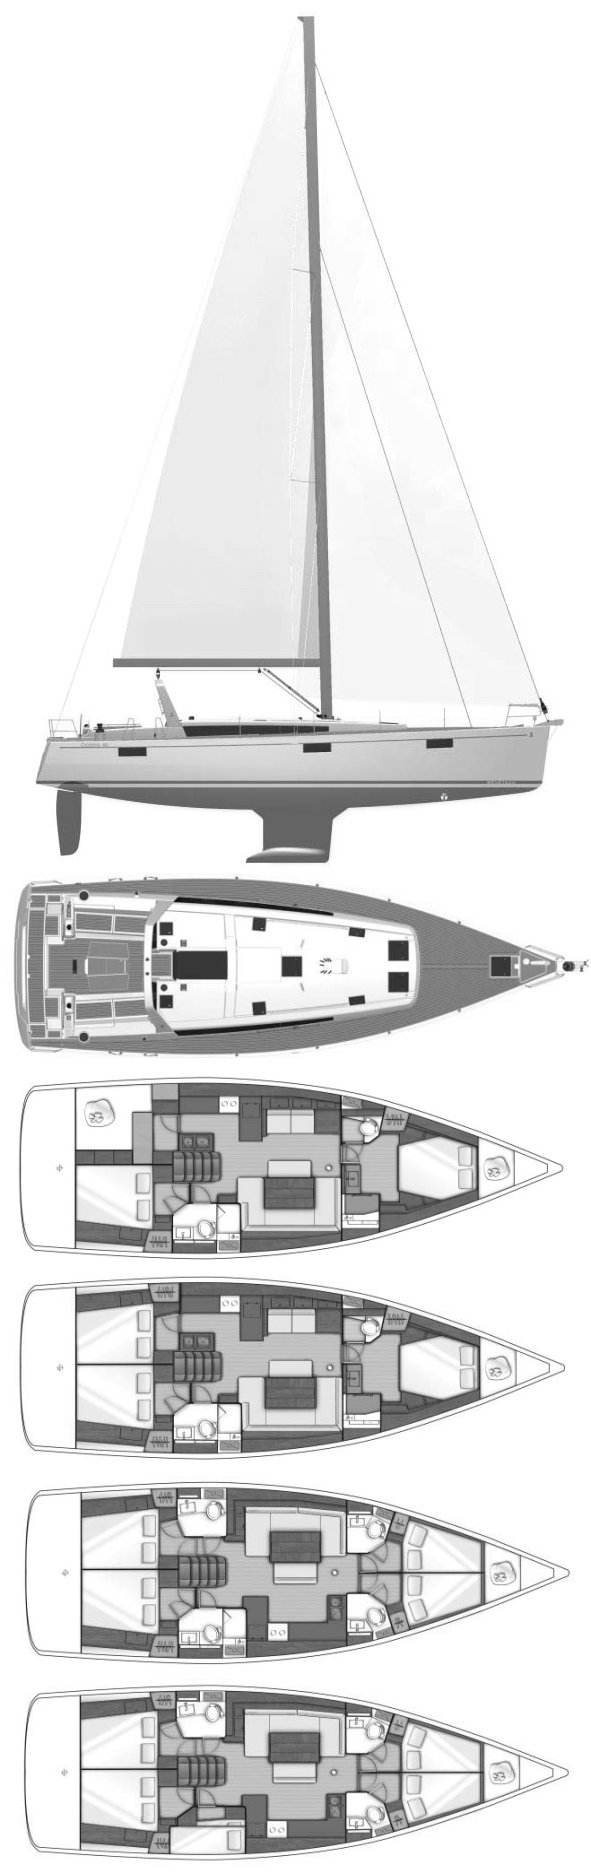 OCEANIS 48 (BENETEAU) drawing